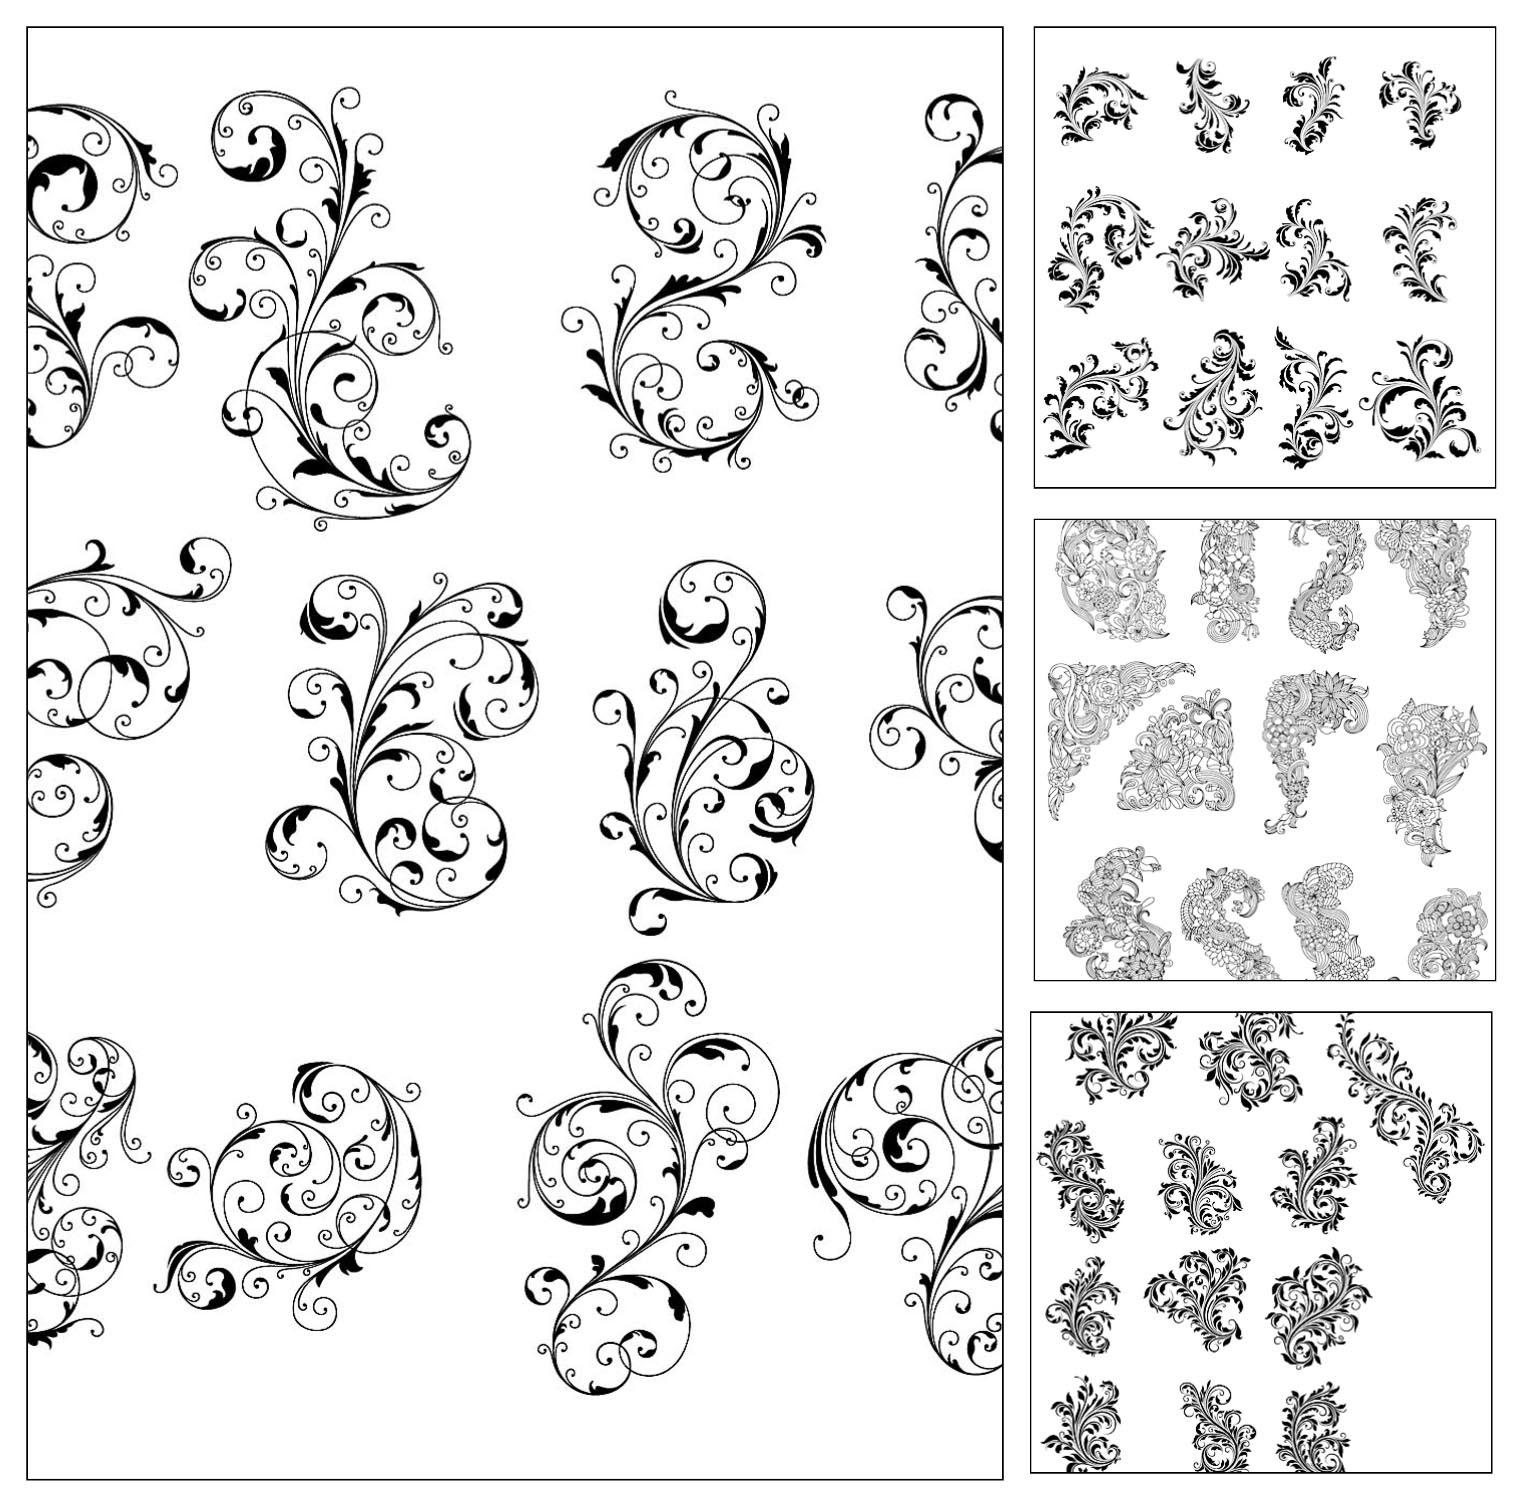 Lovely ornate patterns vector